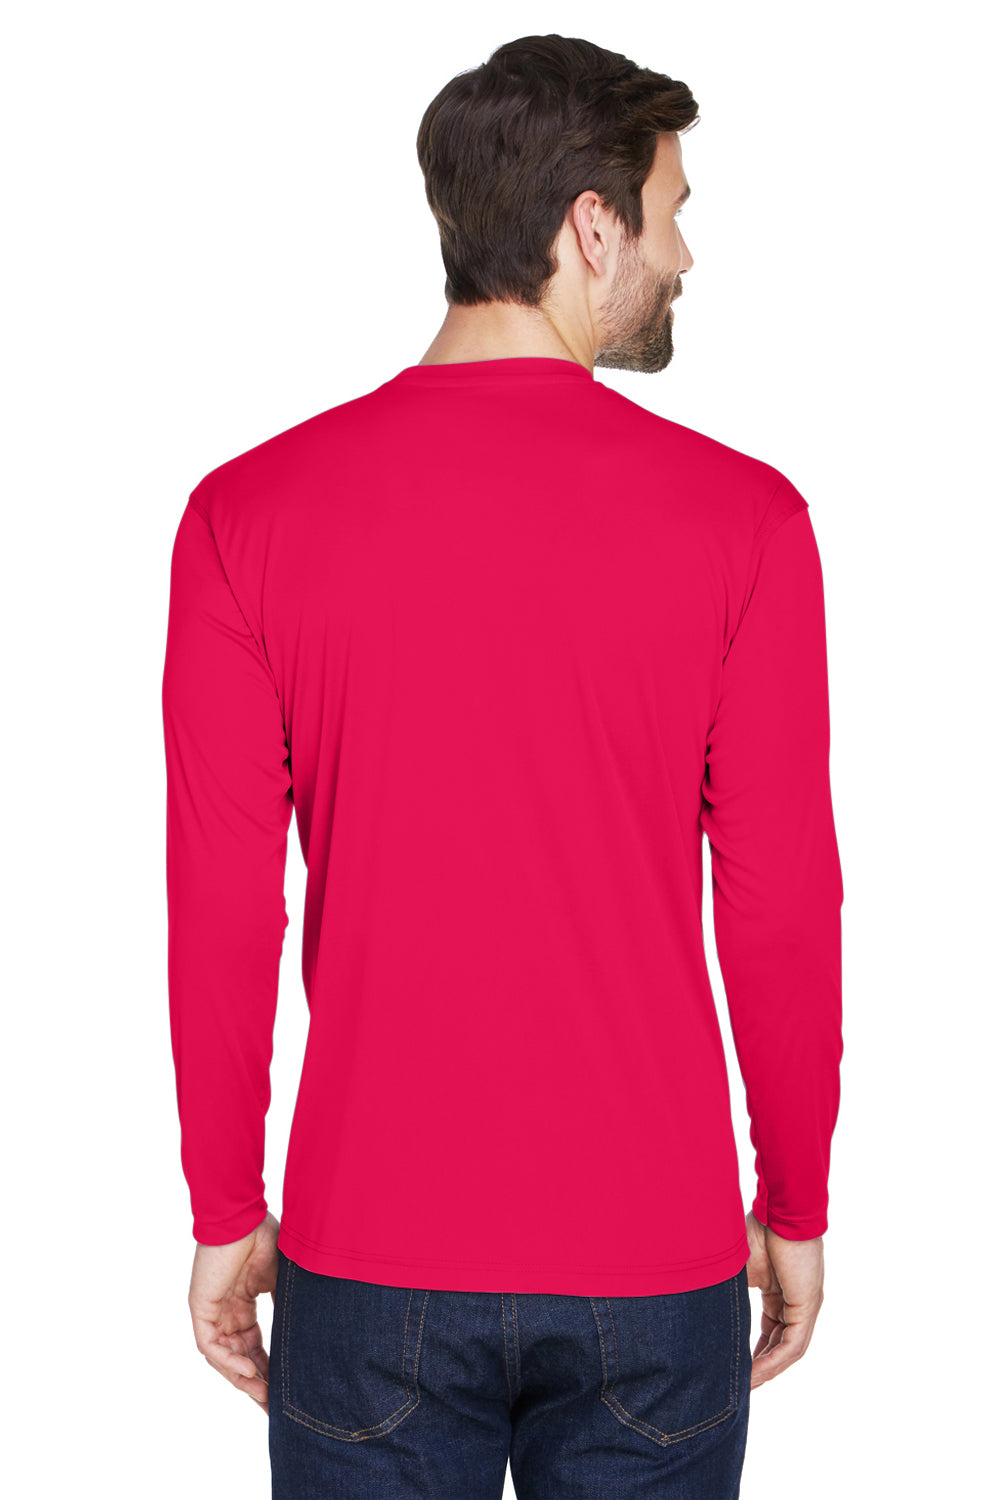 UltraClub 8422 Mens Cool & Dry Performance Moisture Wicking Long Sleeve Crewneck T-Shirt Red Back